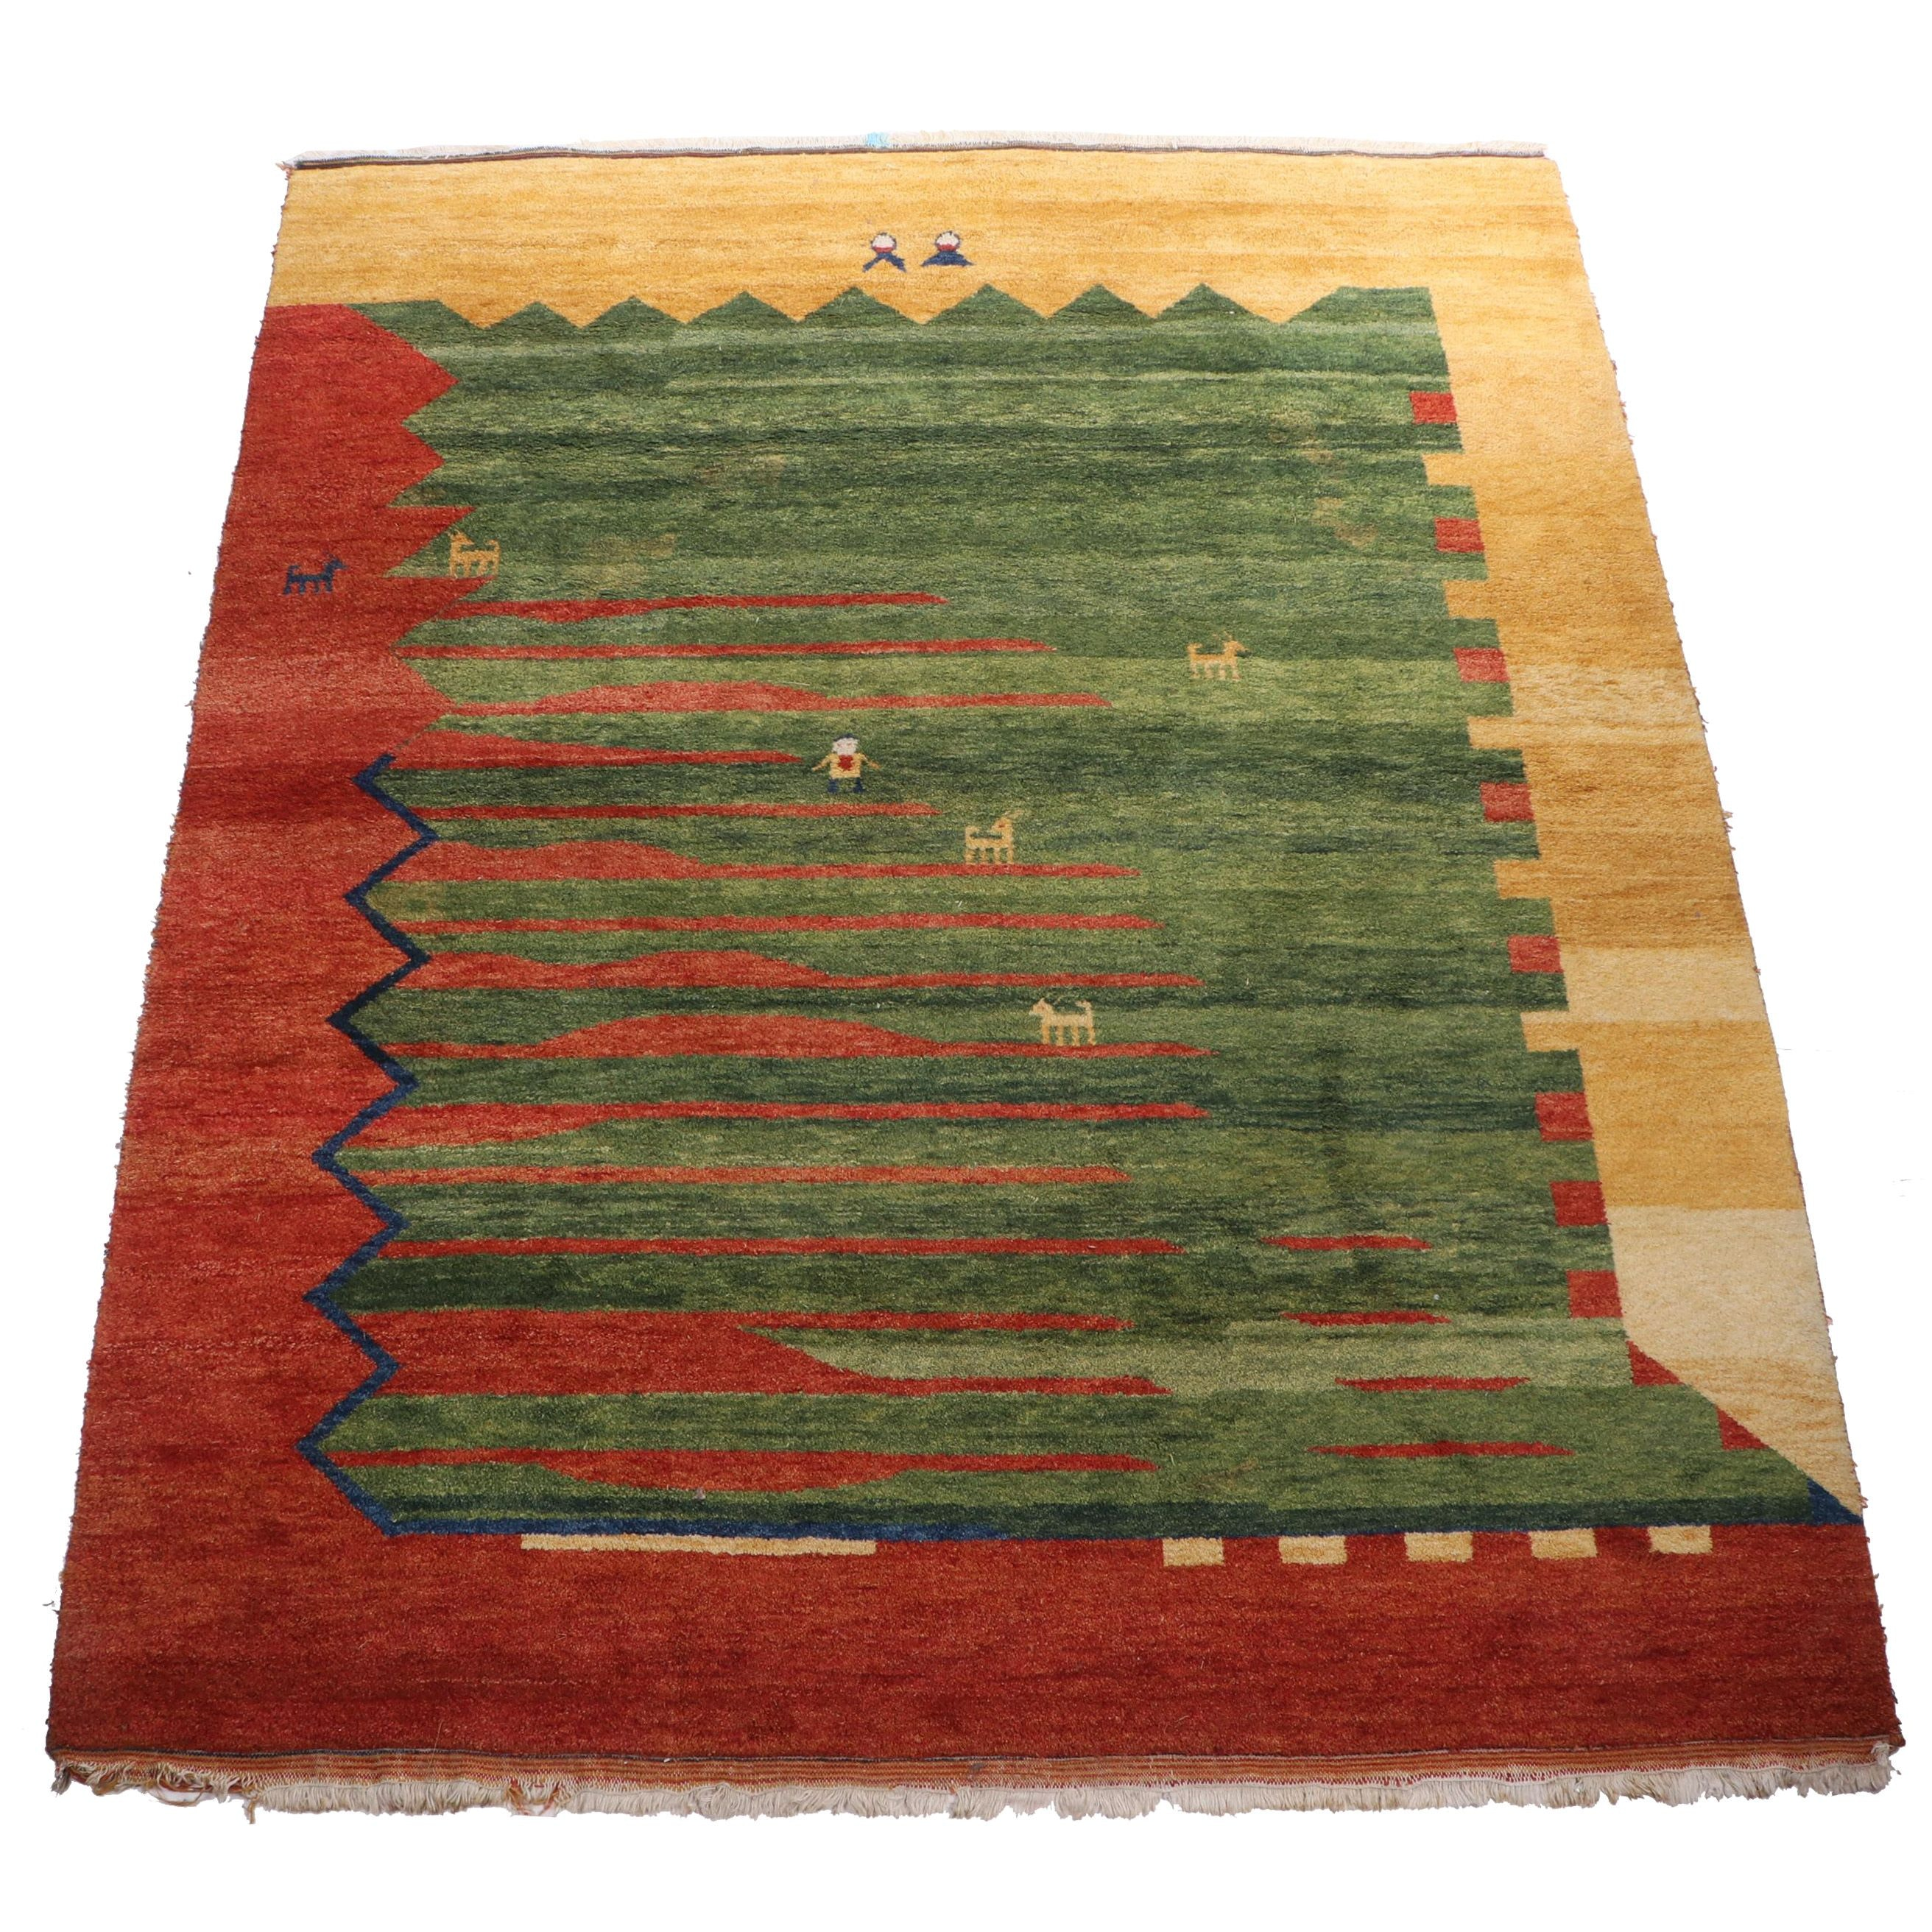 Hand-Knotted Pakistani Persian Gabbeh Wool Room Sized Rug